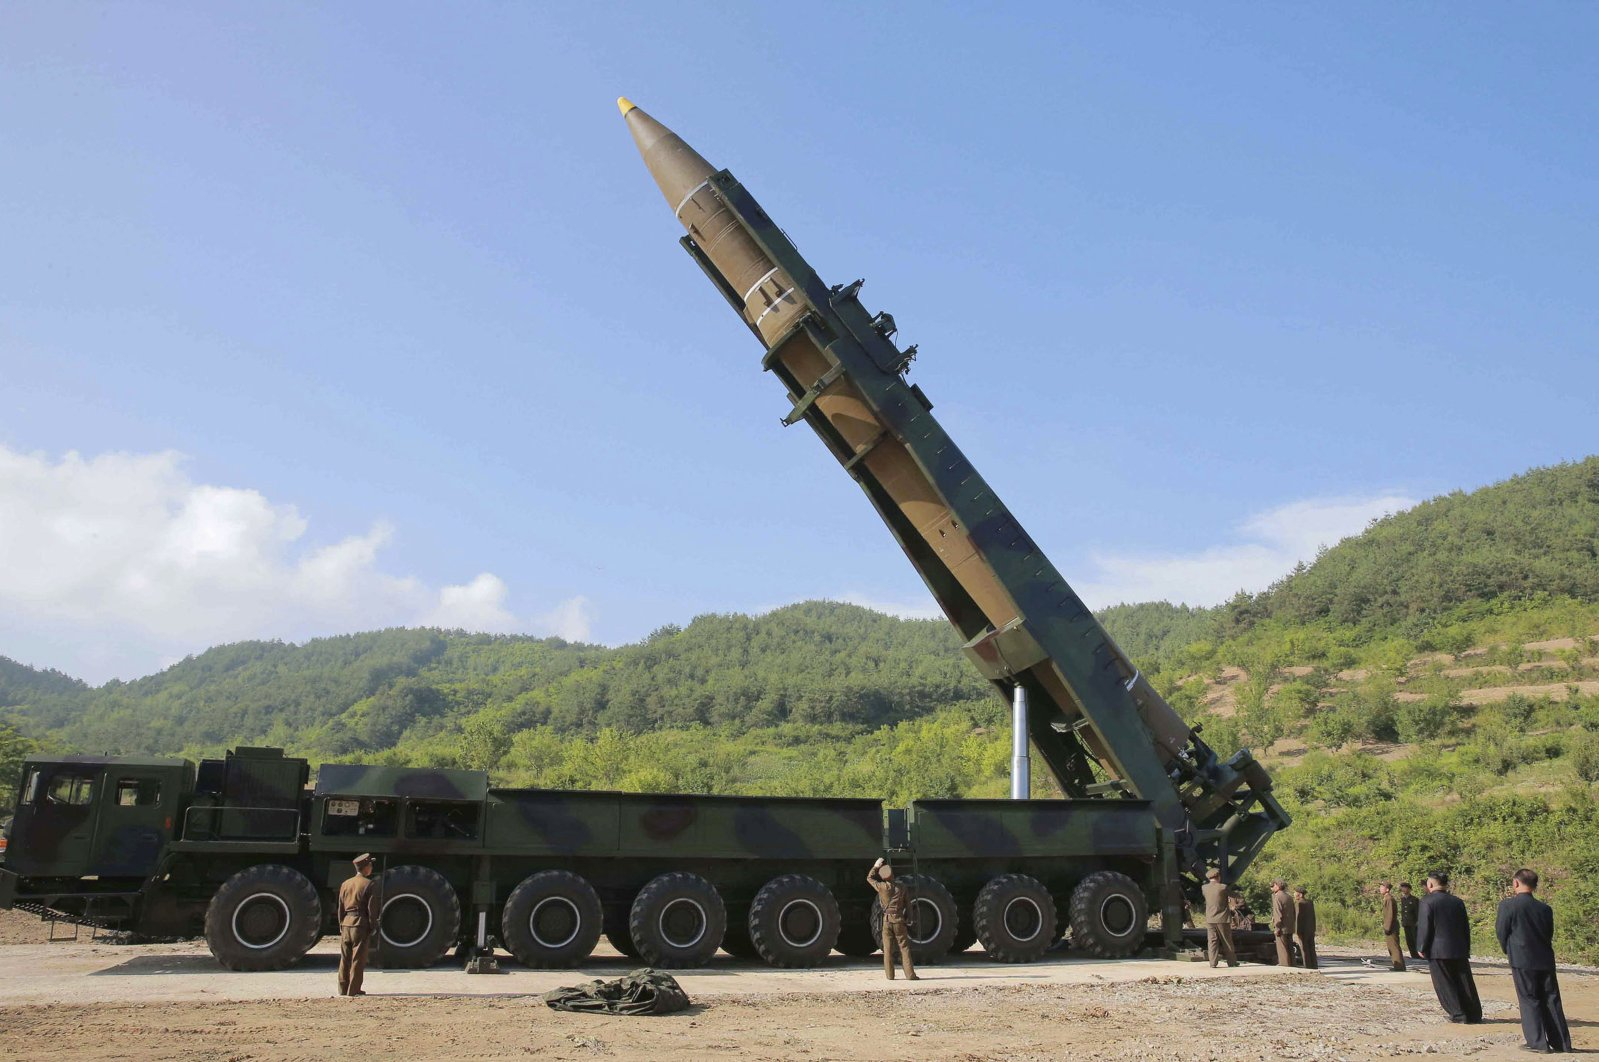 North Korean leader Kim Jong Un, (second from right), inspects the preparation of the launch of a Hwasong-14 intercontinental ballistic missile (ICBM) in North Korea's northwest, July 4, 2017. (AP Photo)